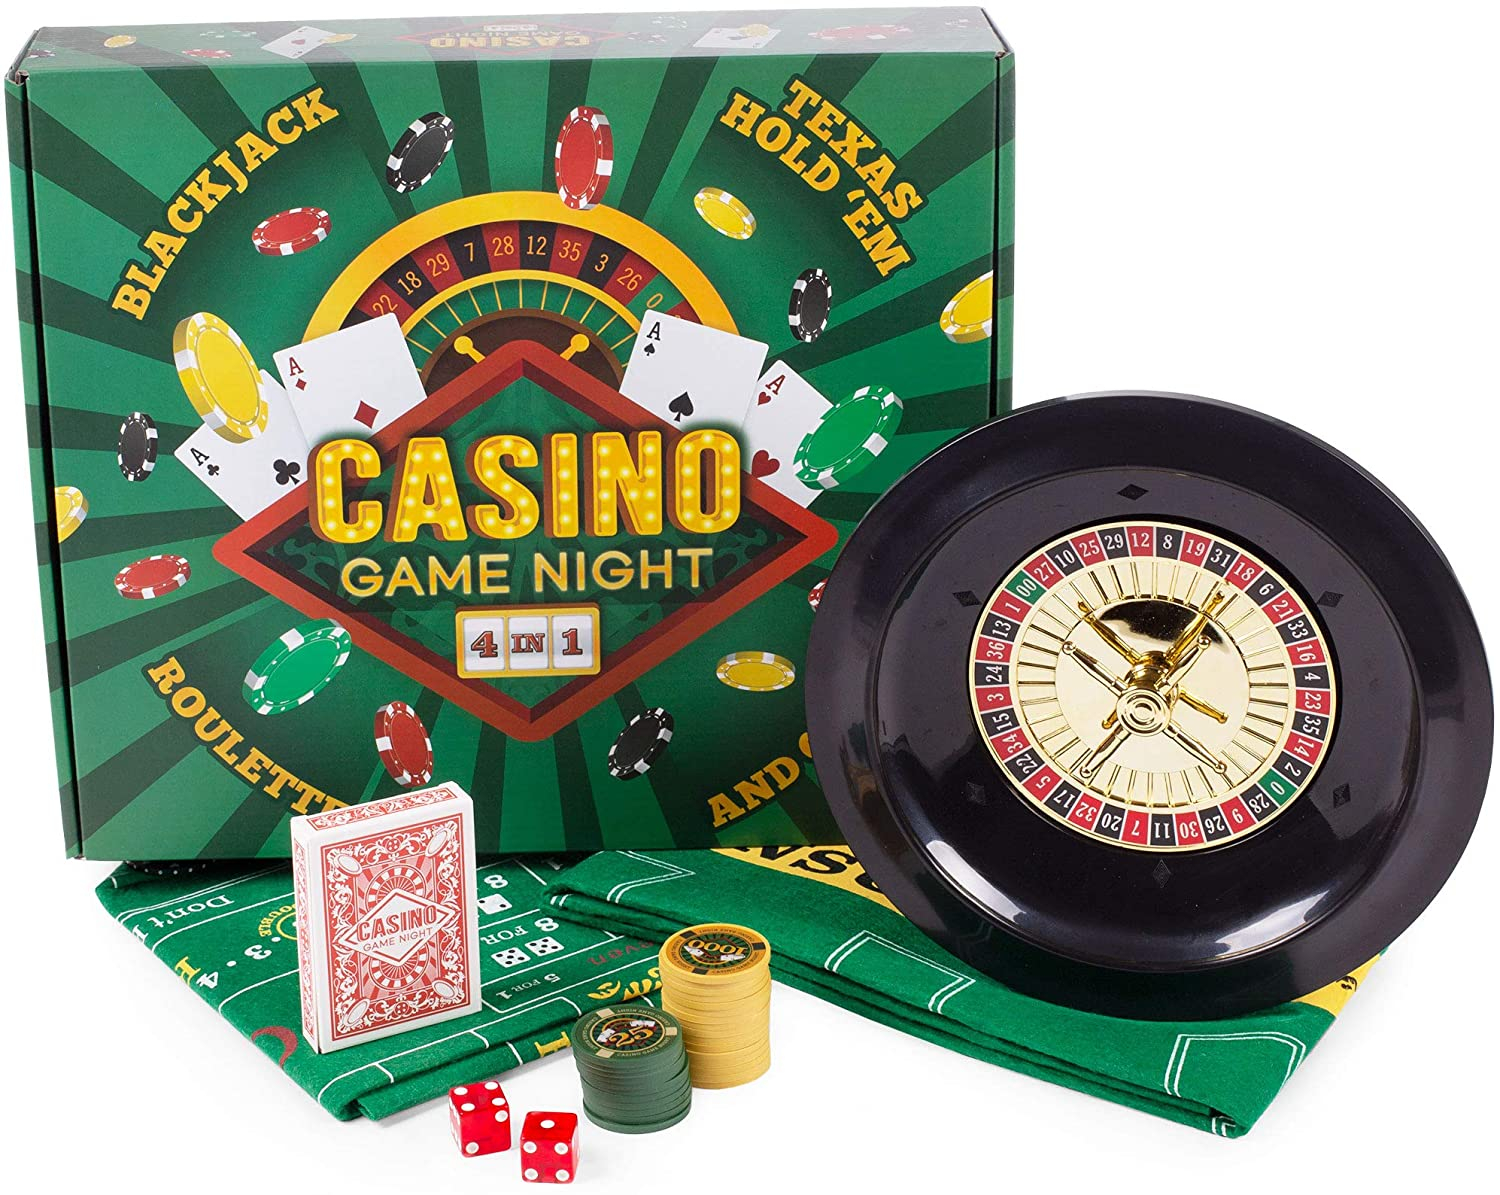 Casino Game Night